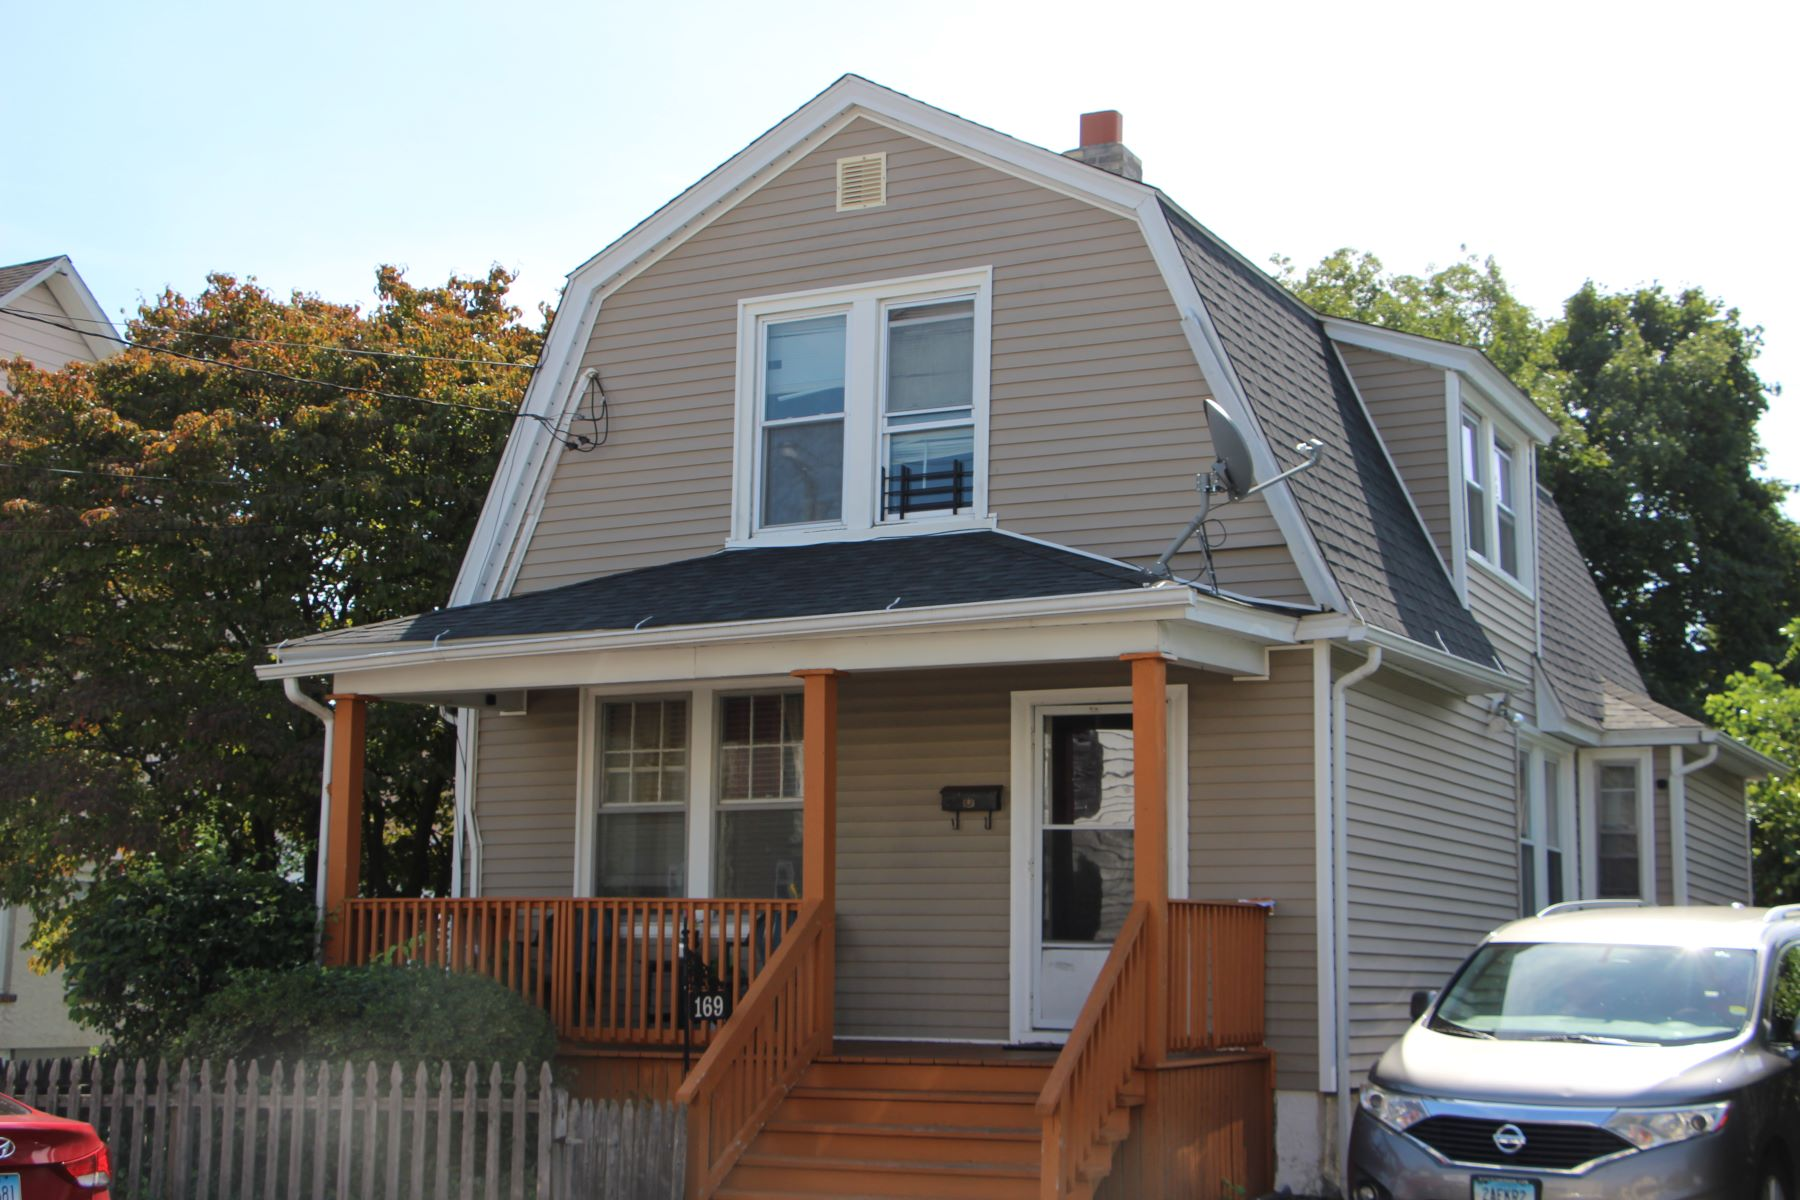 Single Family Homes for Sale at Perfect Starter Home 169 Cleveland Avenue Bridgeport, Connecticut 06606 United States